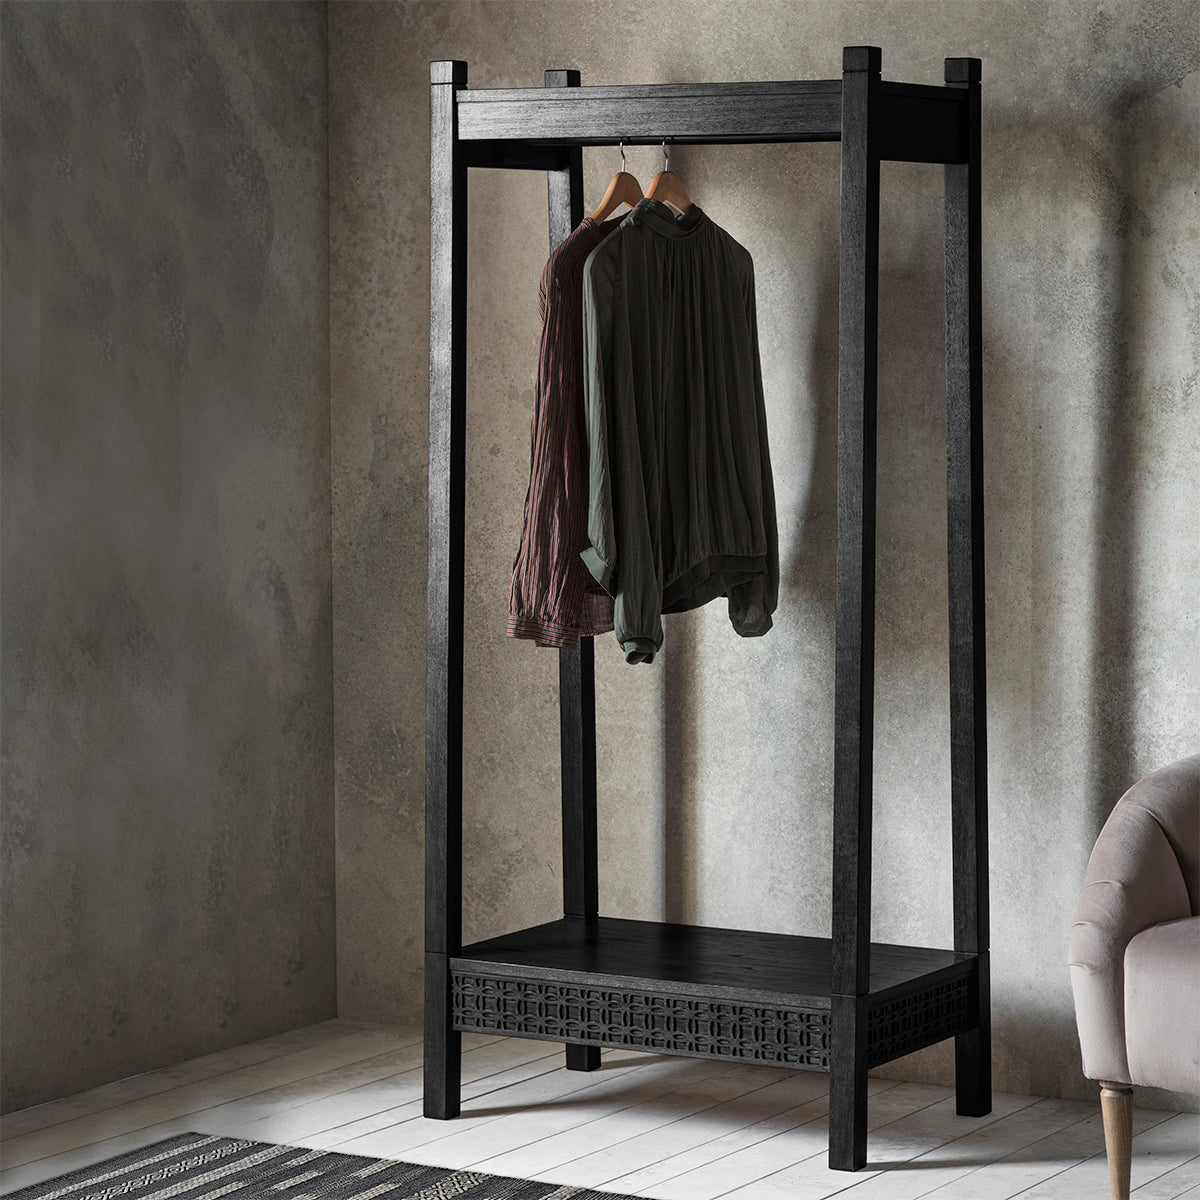 Greenwich Open Wardrobe in Dark Charcoal - Ezzo